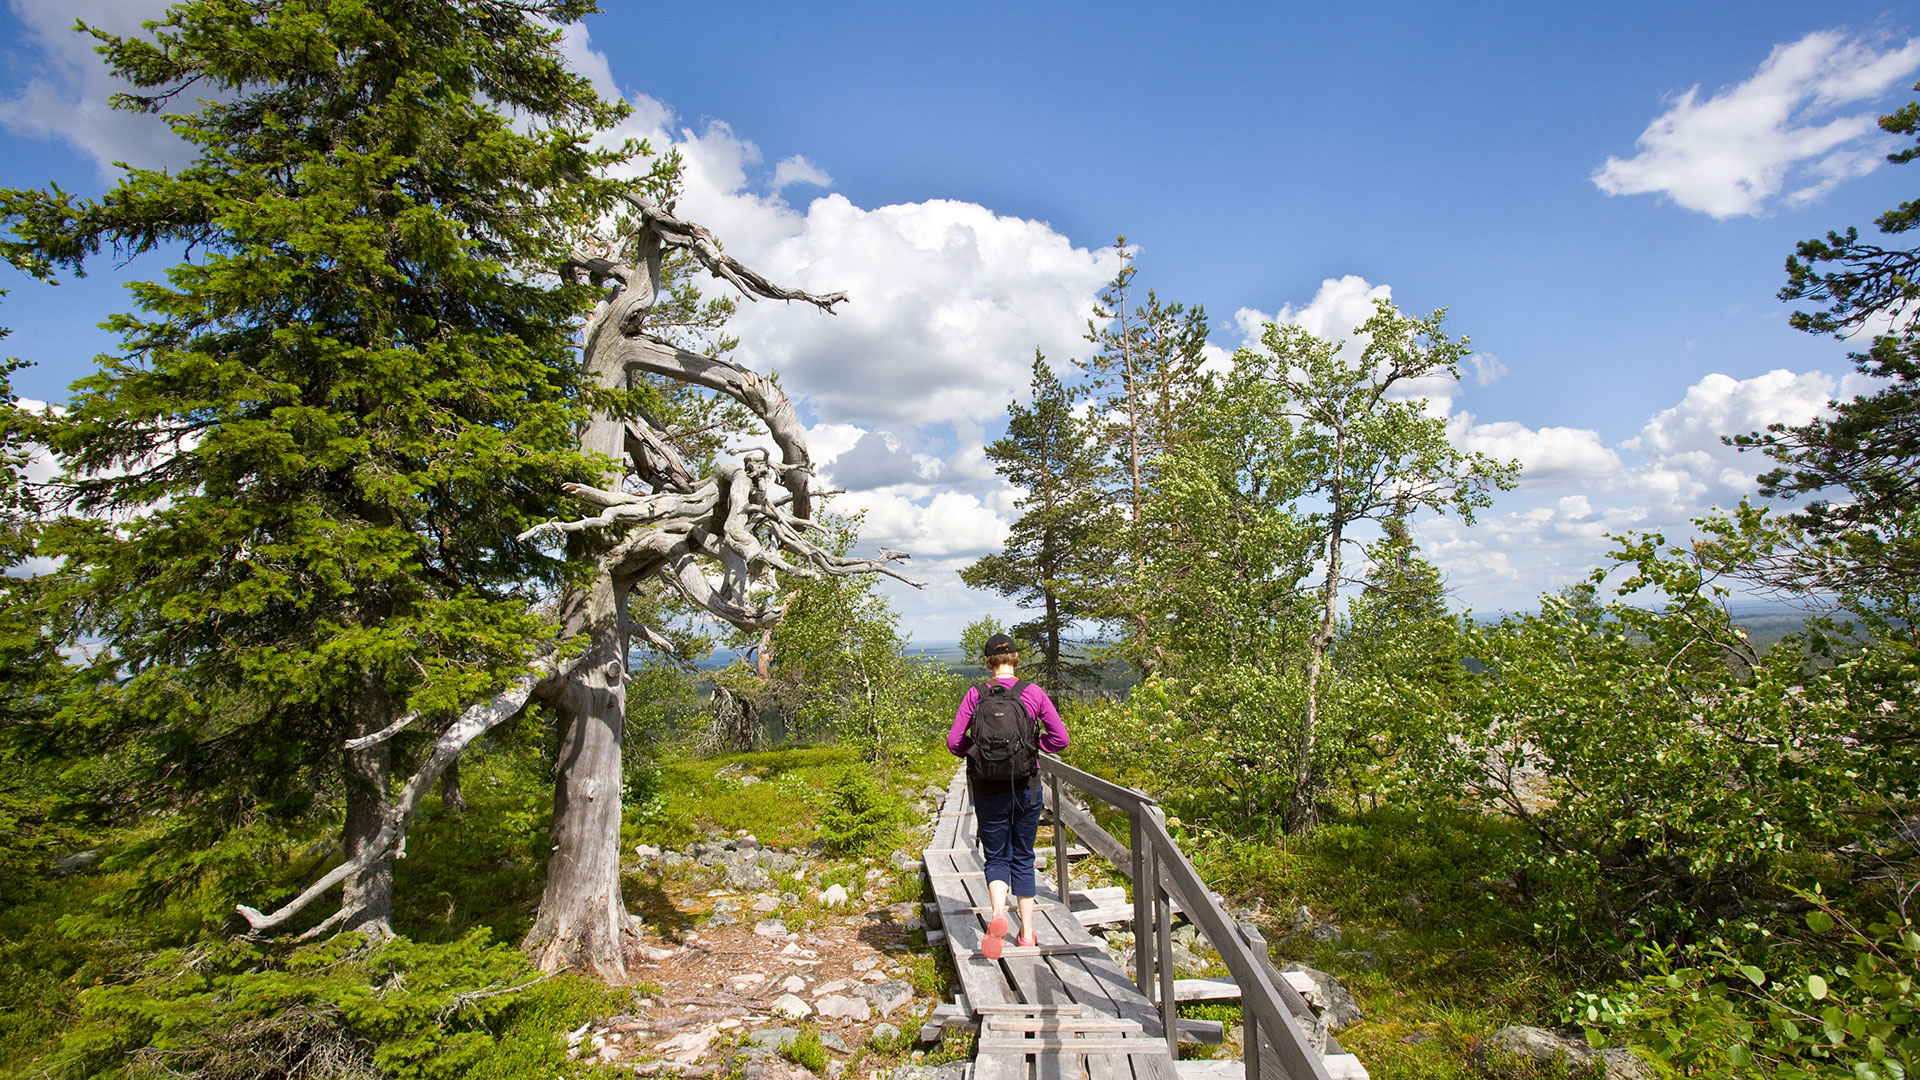 Hiking up the Lampivaara fell to the Amethyst mine in Luosto, close to Rovaniemi, Lapland, Finland.